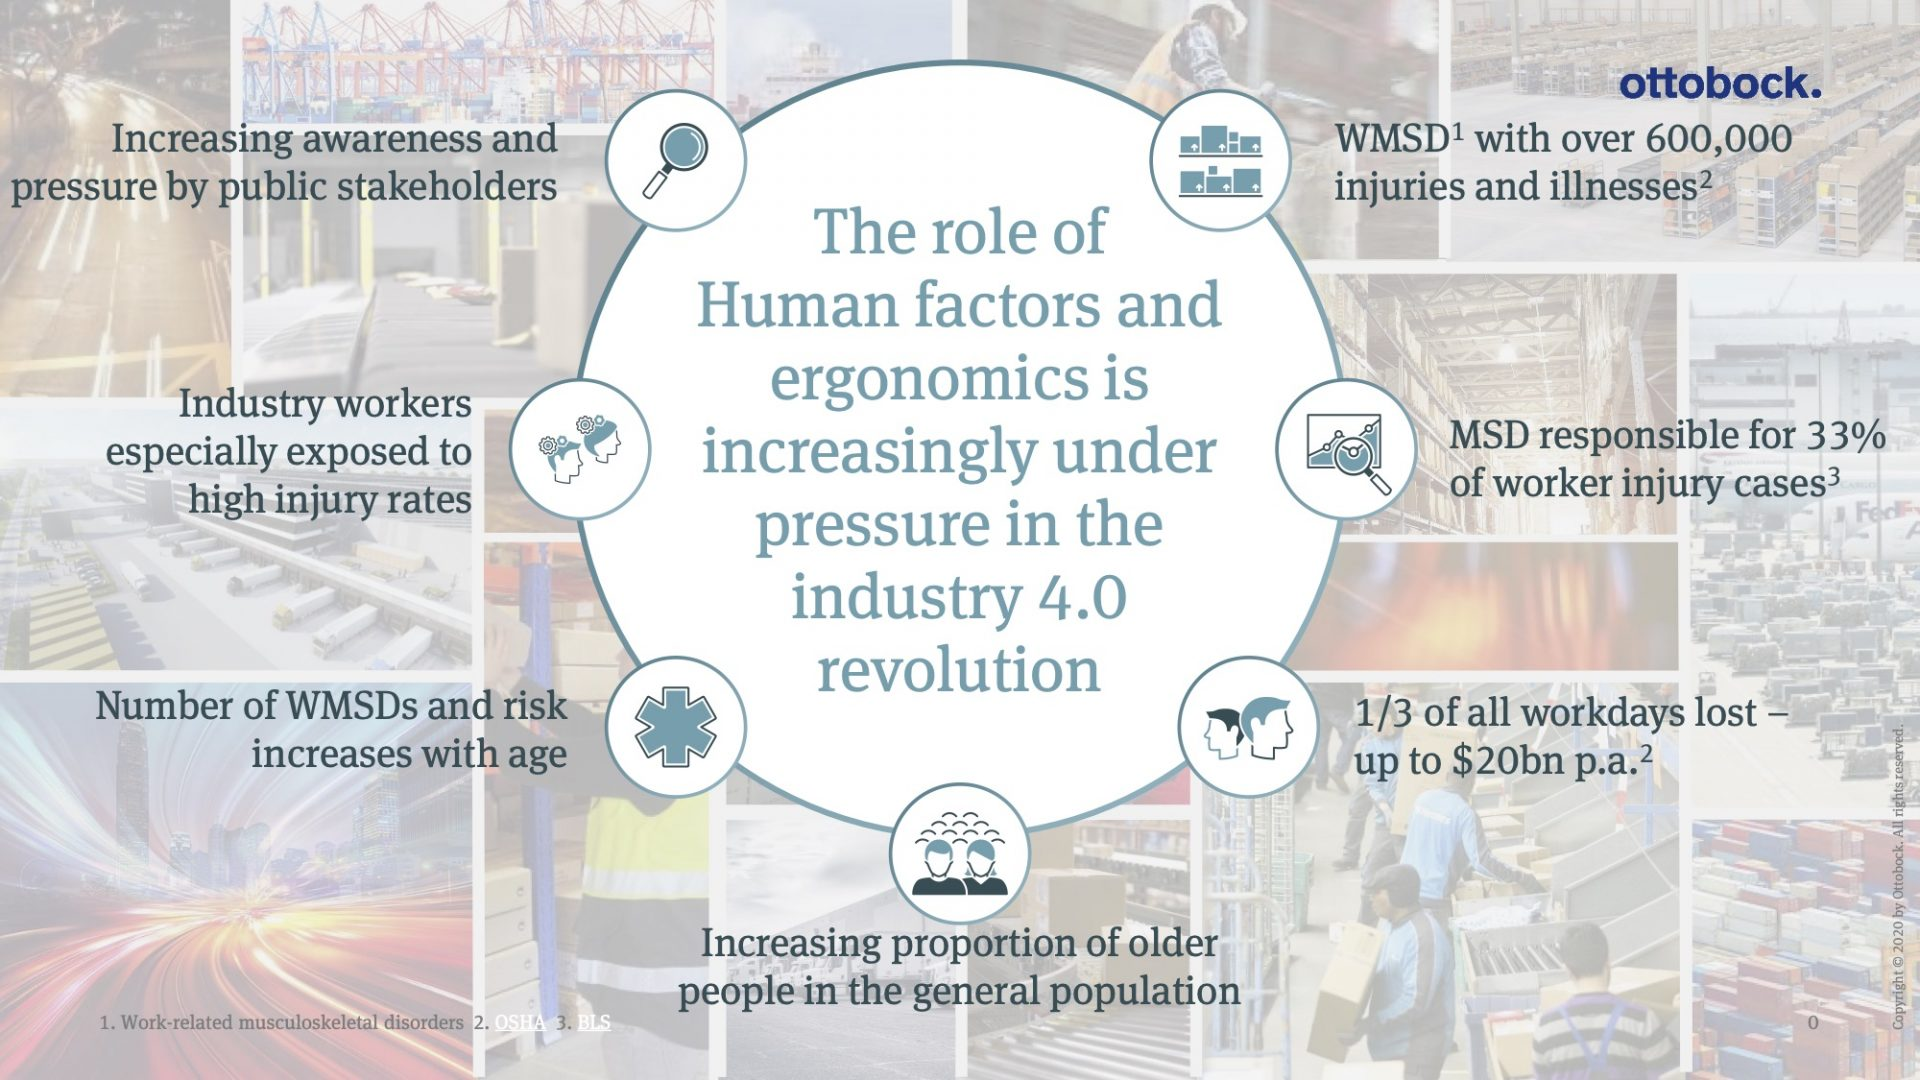 The role of Human factors and ergonomics is increasingly under pressure in the industry 4.0 revolution